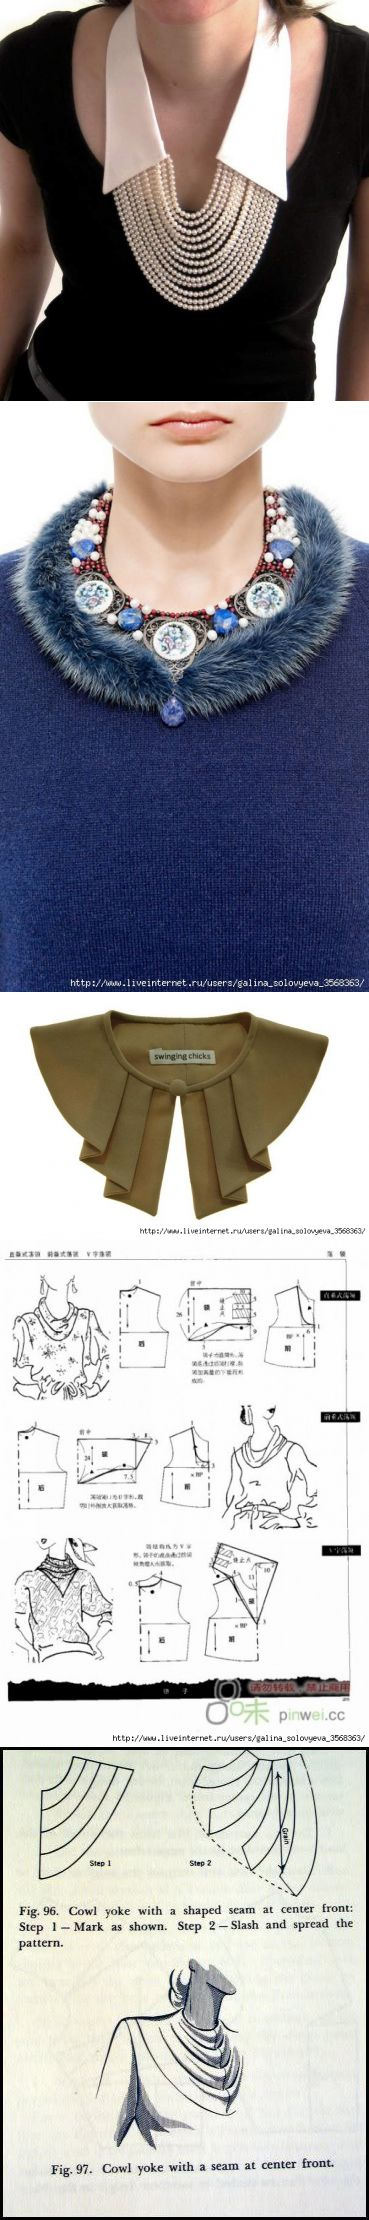 Stitch Collar Collections...♥ Deniz ♥